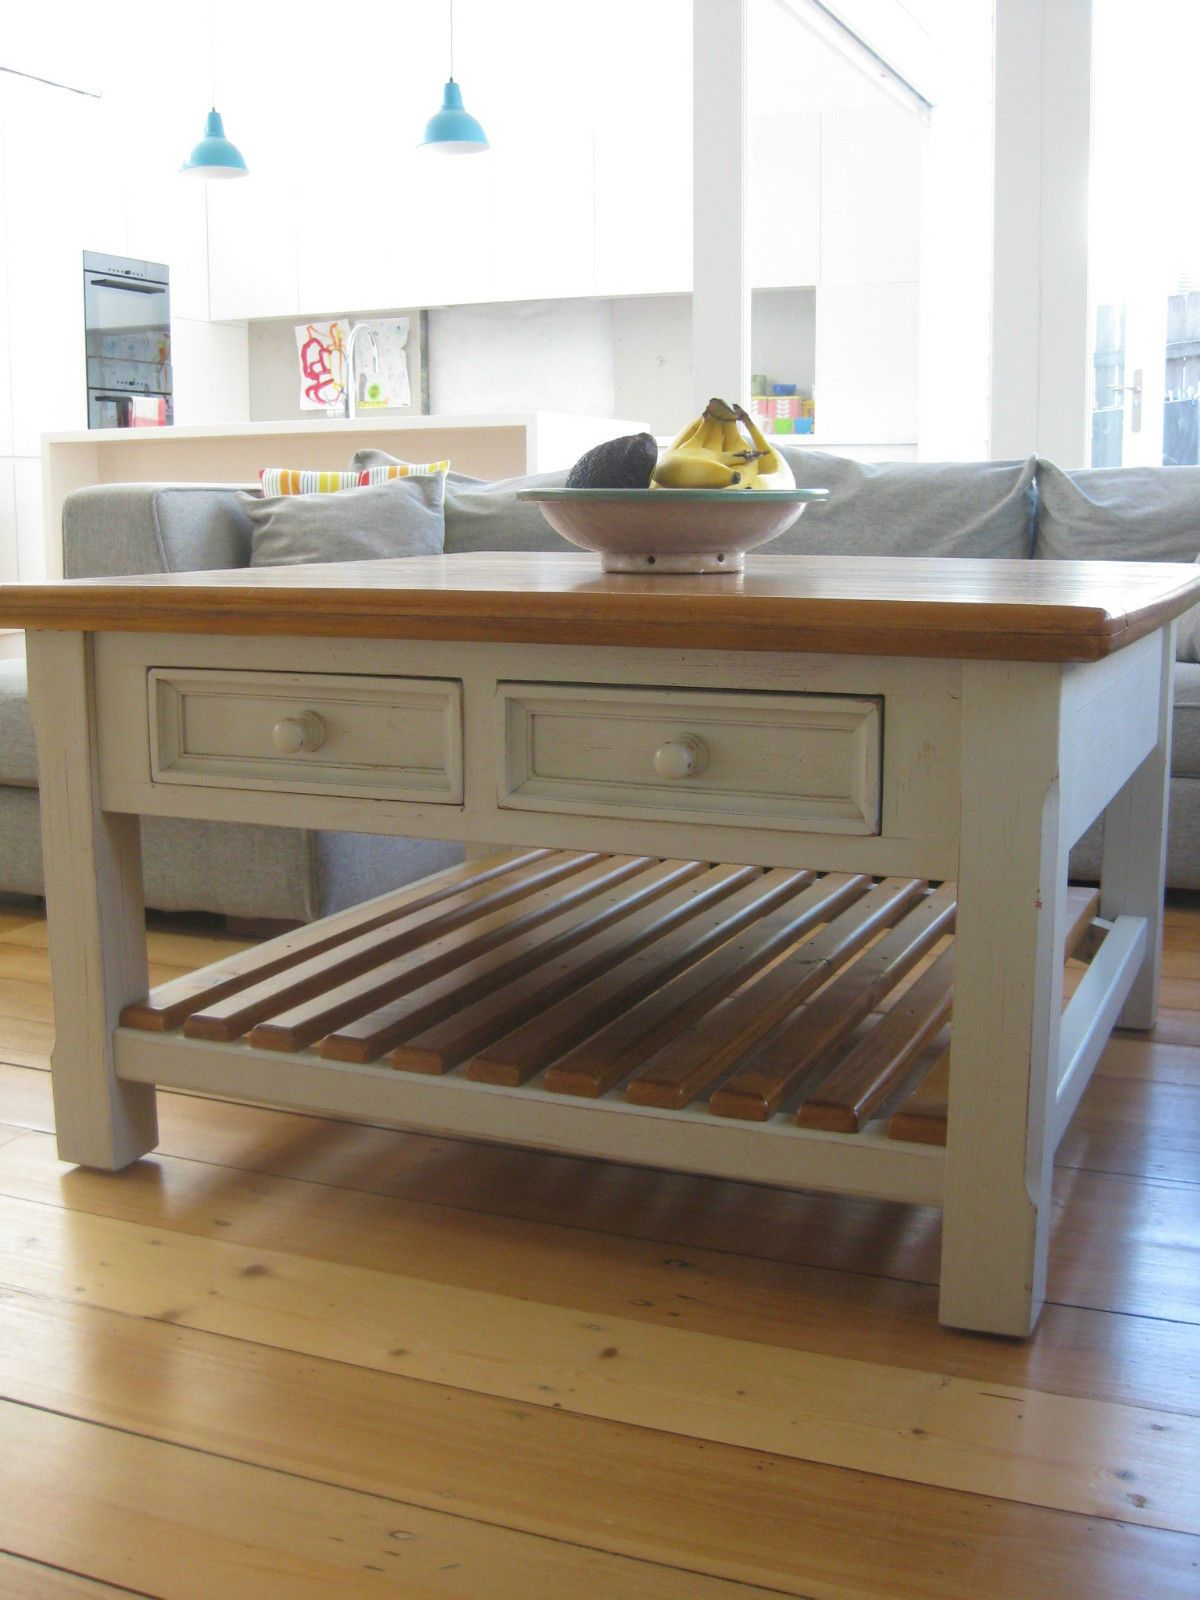 French provincial beach house rustic farmhouse timber coffee table french provincial beach house rustic farmhouse timber coffee table in sydney nsw ebay geotapseo Images